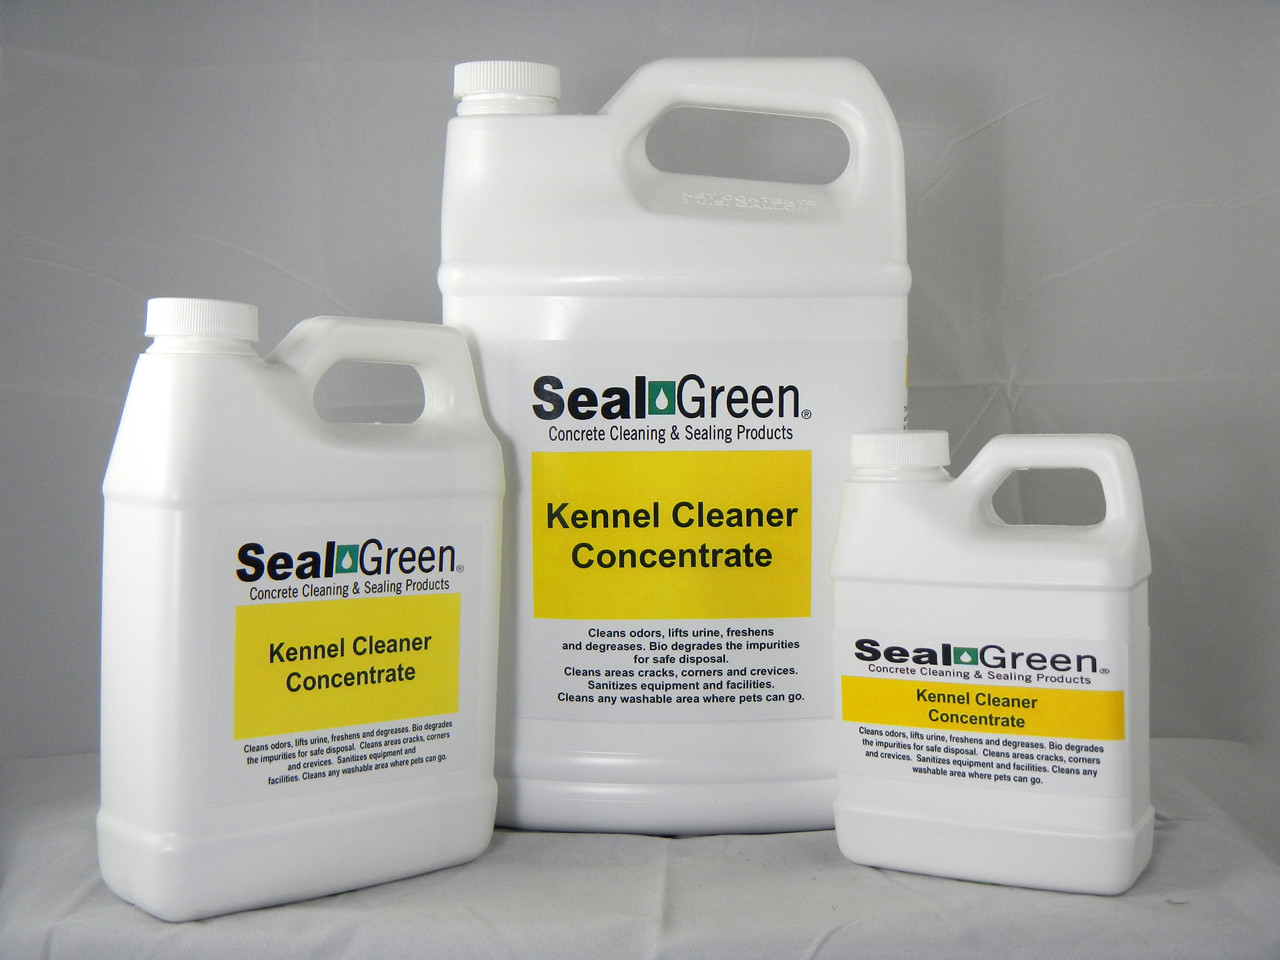 SealGreen Kennel Cleaner